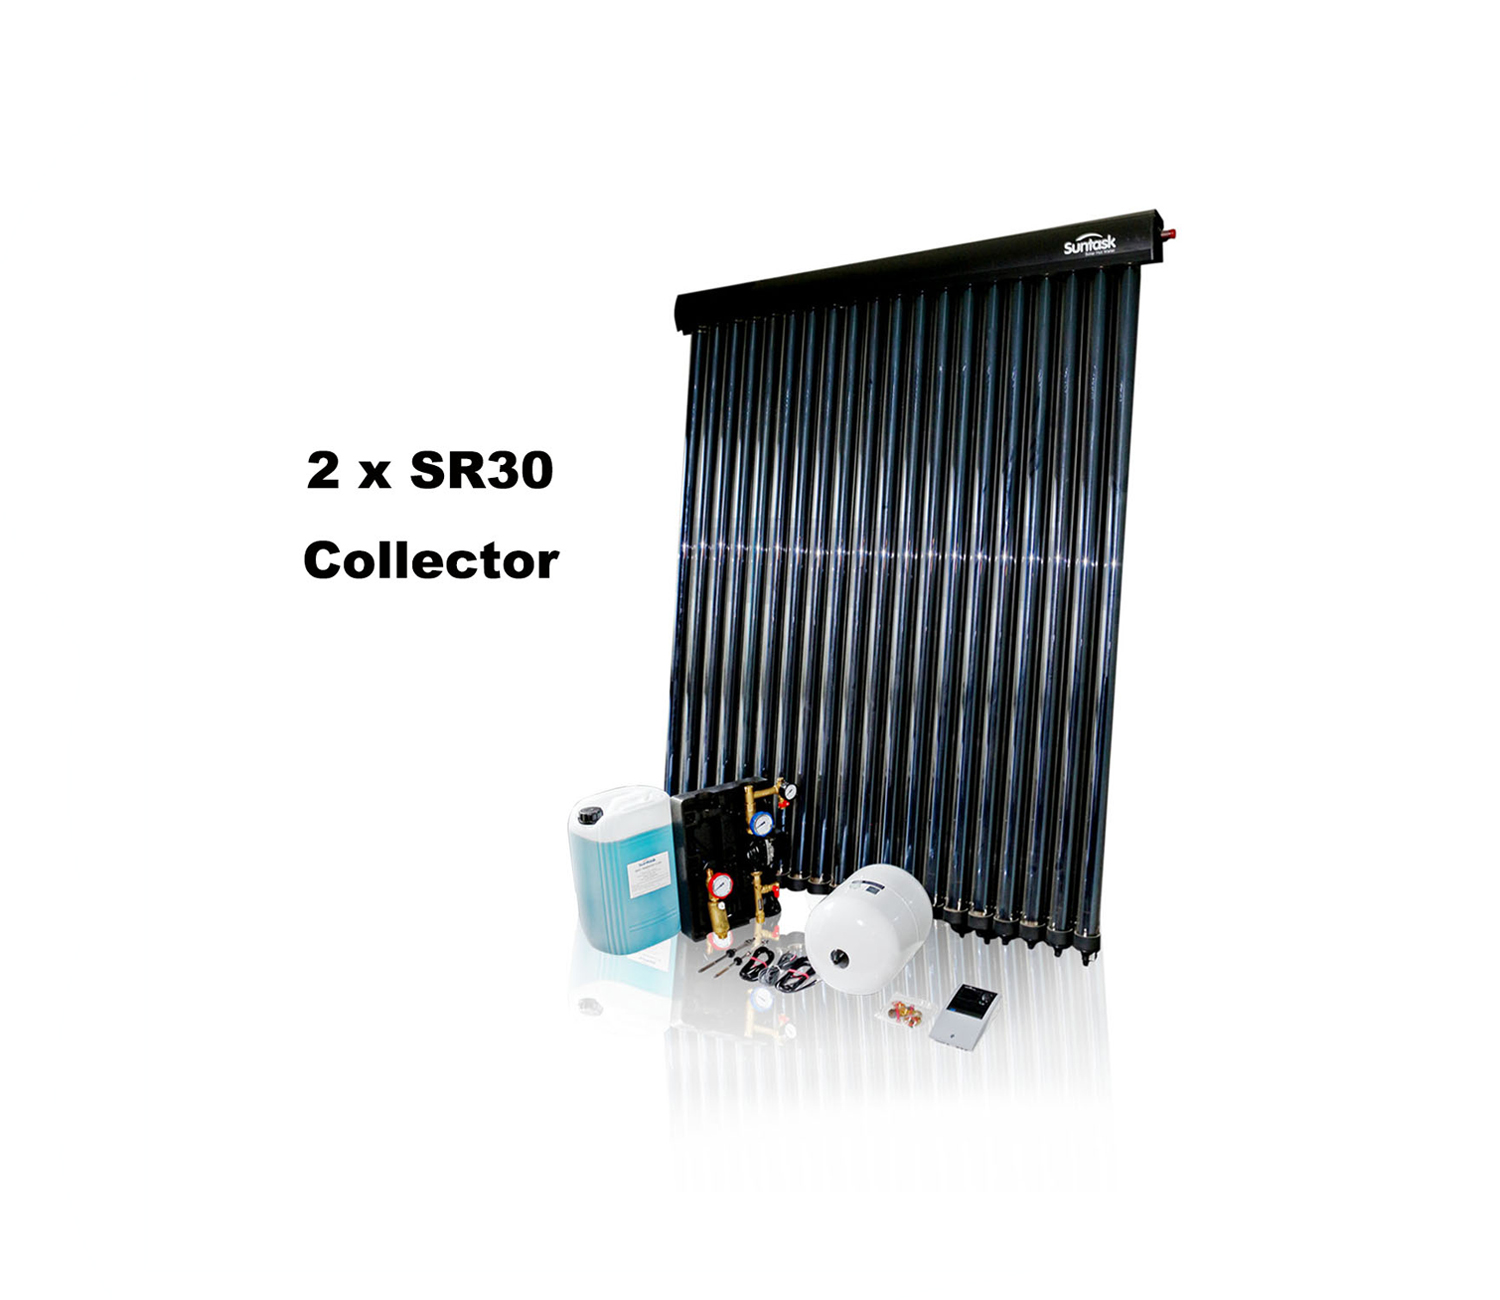 Suntask full Solar Thermal Kits excluding Cylinders 60 Tube System (2 x SR30 Collector)